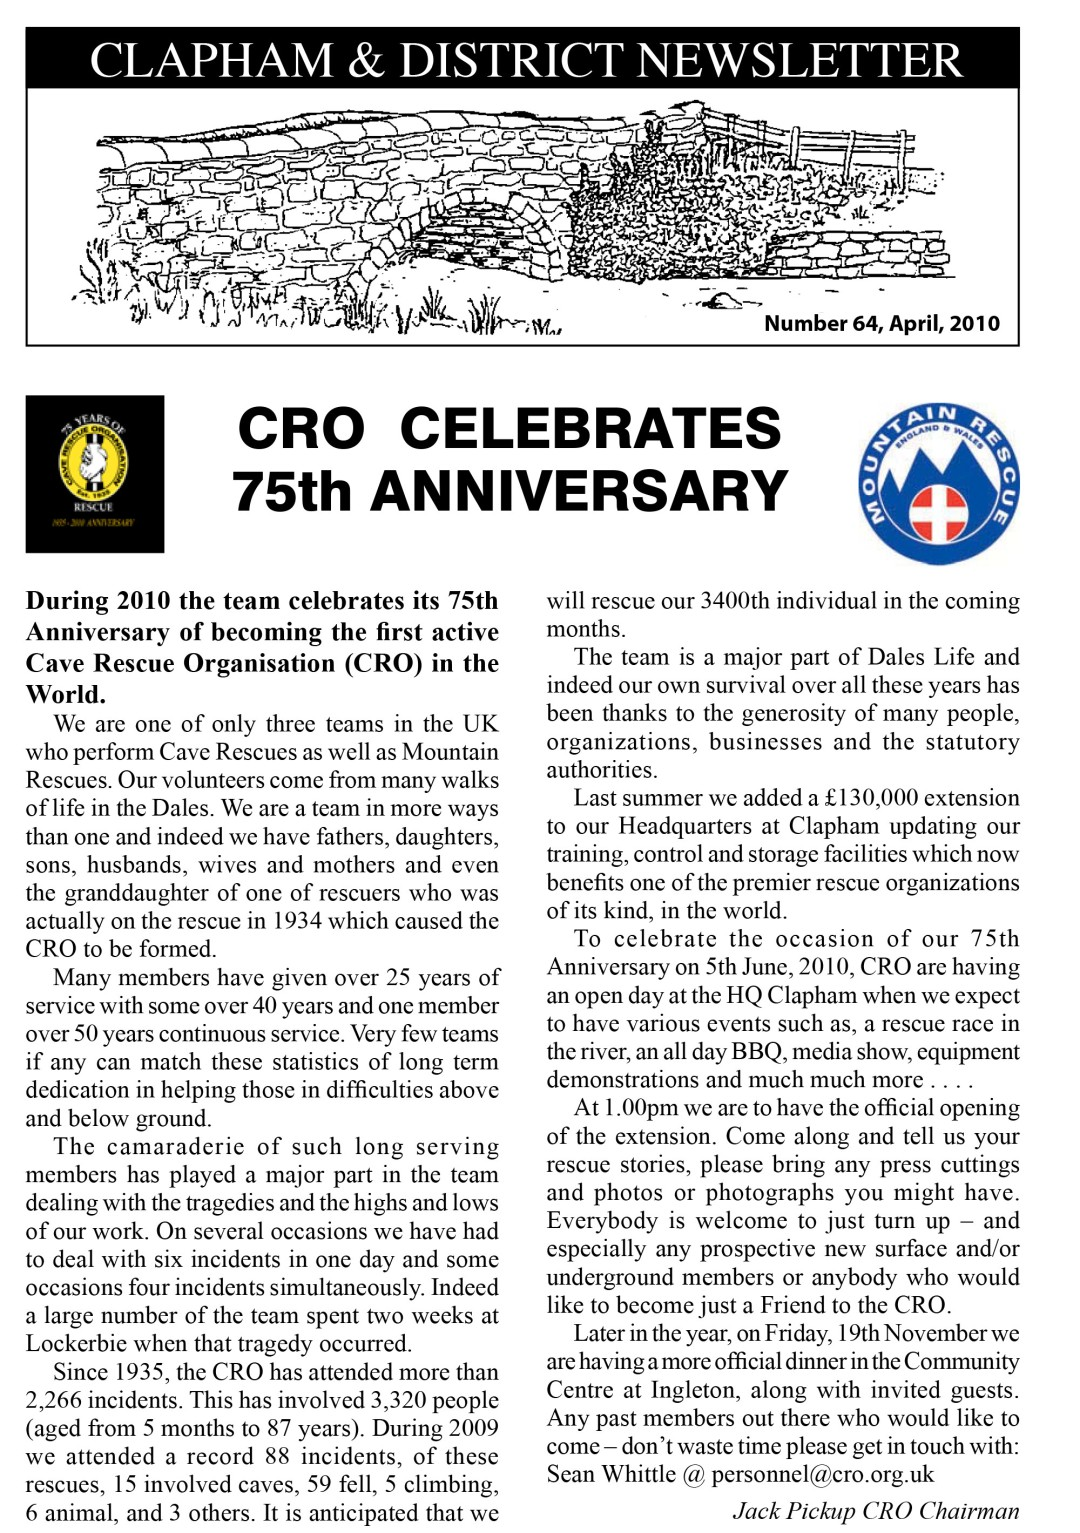 Newsletter_No64_April_2010-1